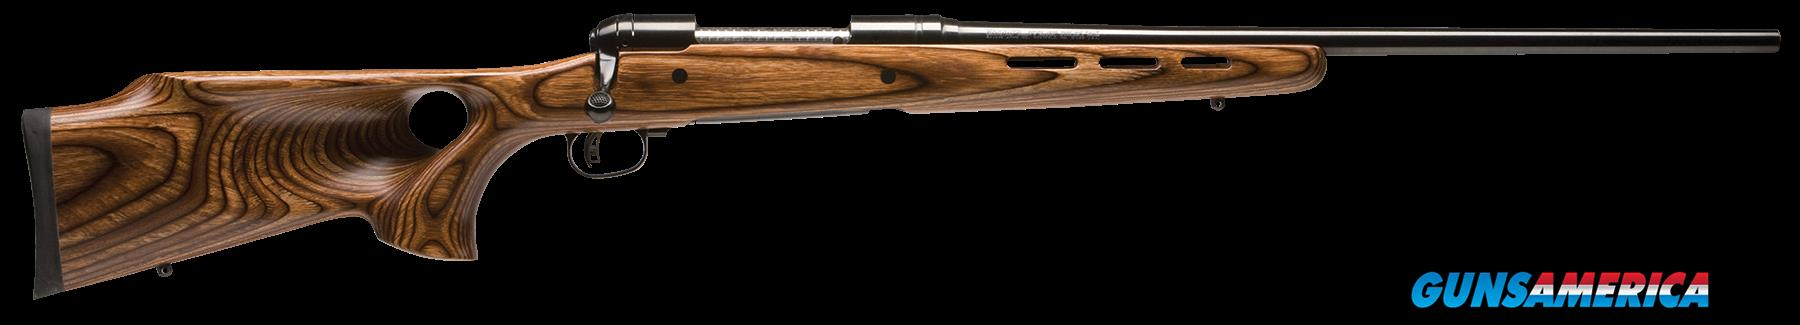 "Savage 18508 11/111 BTH Bolt 223 Rem 22"" 4+1 Laminate Thumbhole Brown Stk Blued  Guns > Rifles > S Misc Rifles"